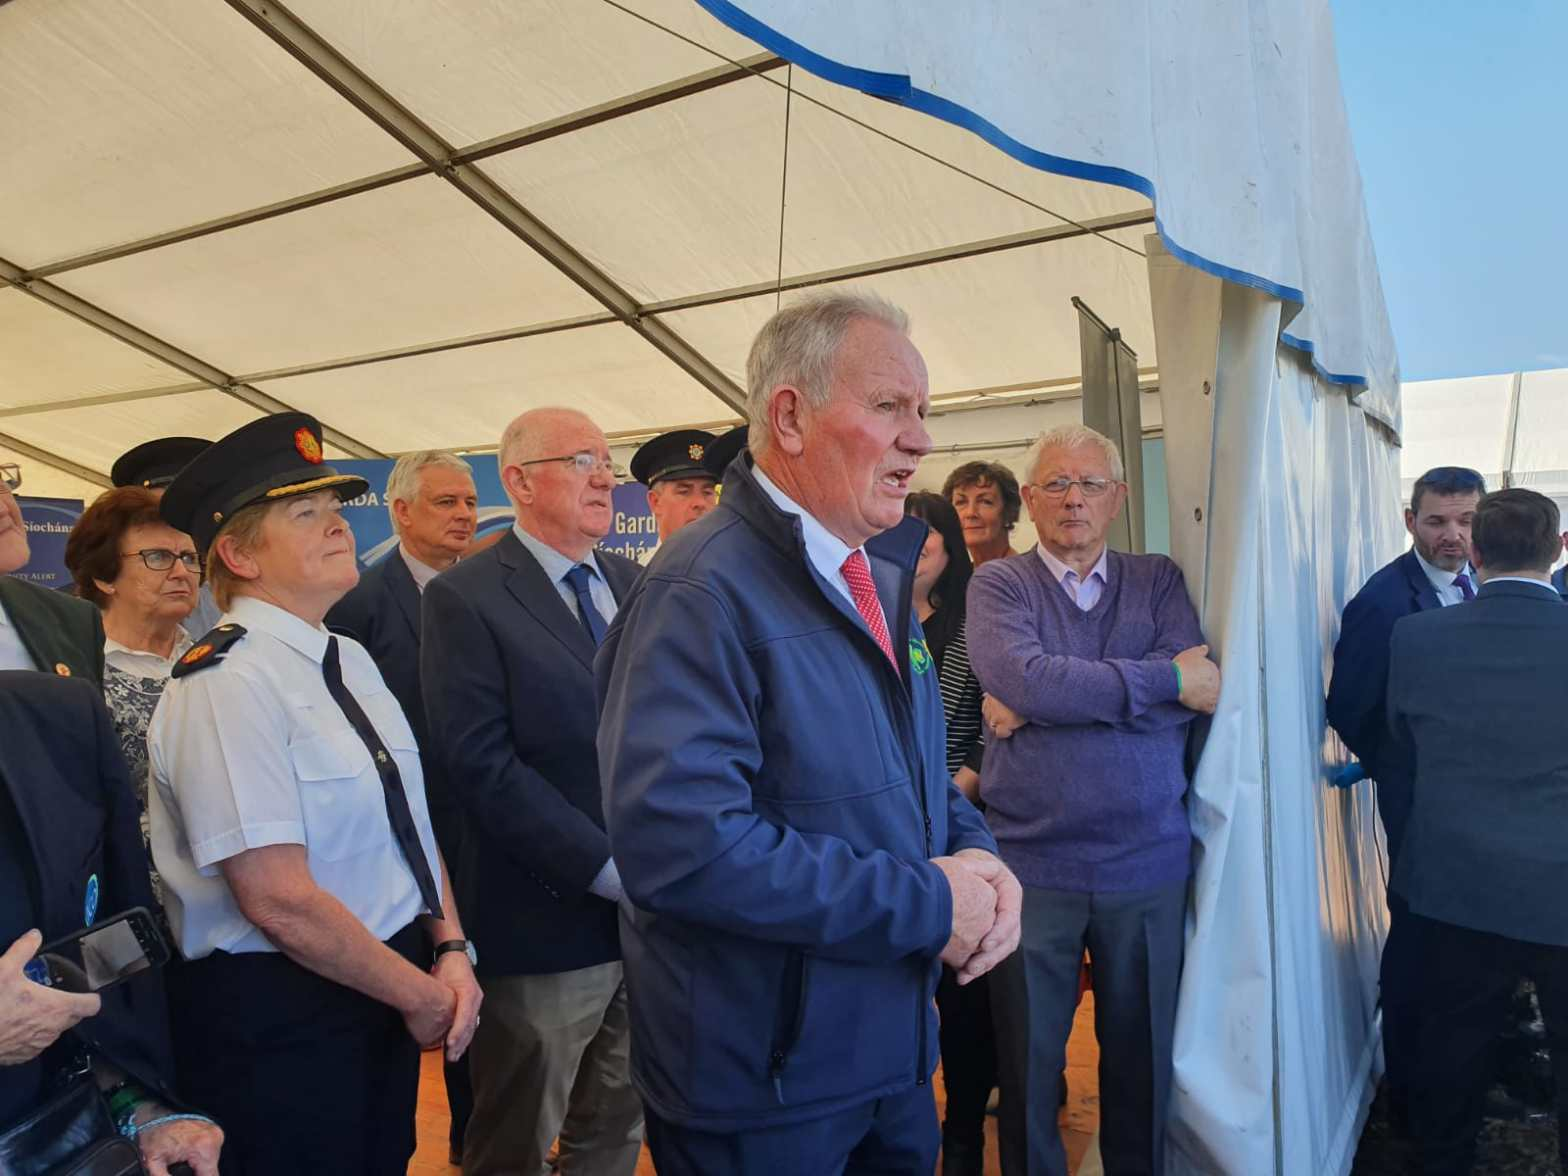 NATIONAL RURAL SAFETY FORUM WILL HELP TACKLE RURAL CRIME